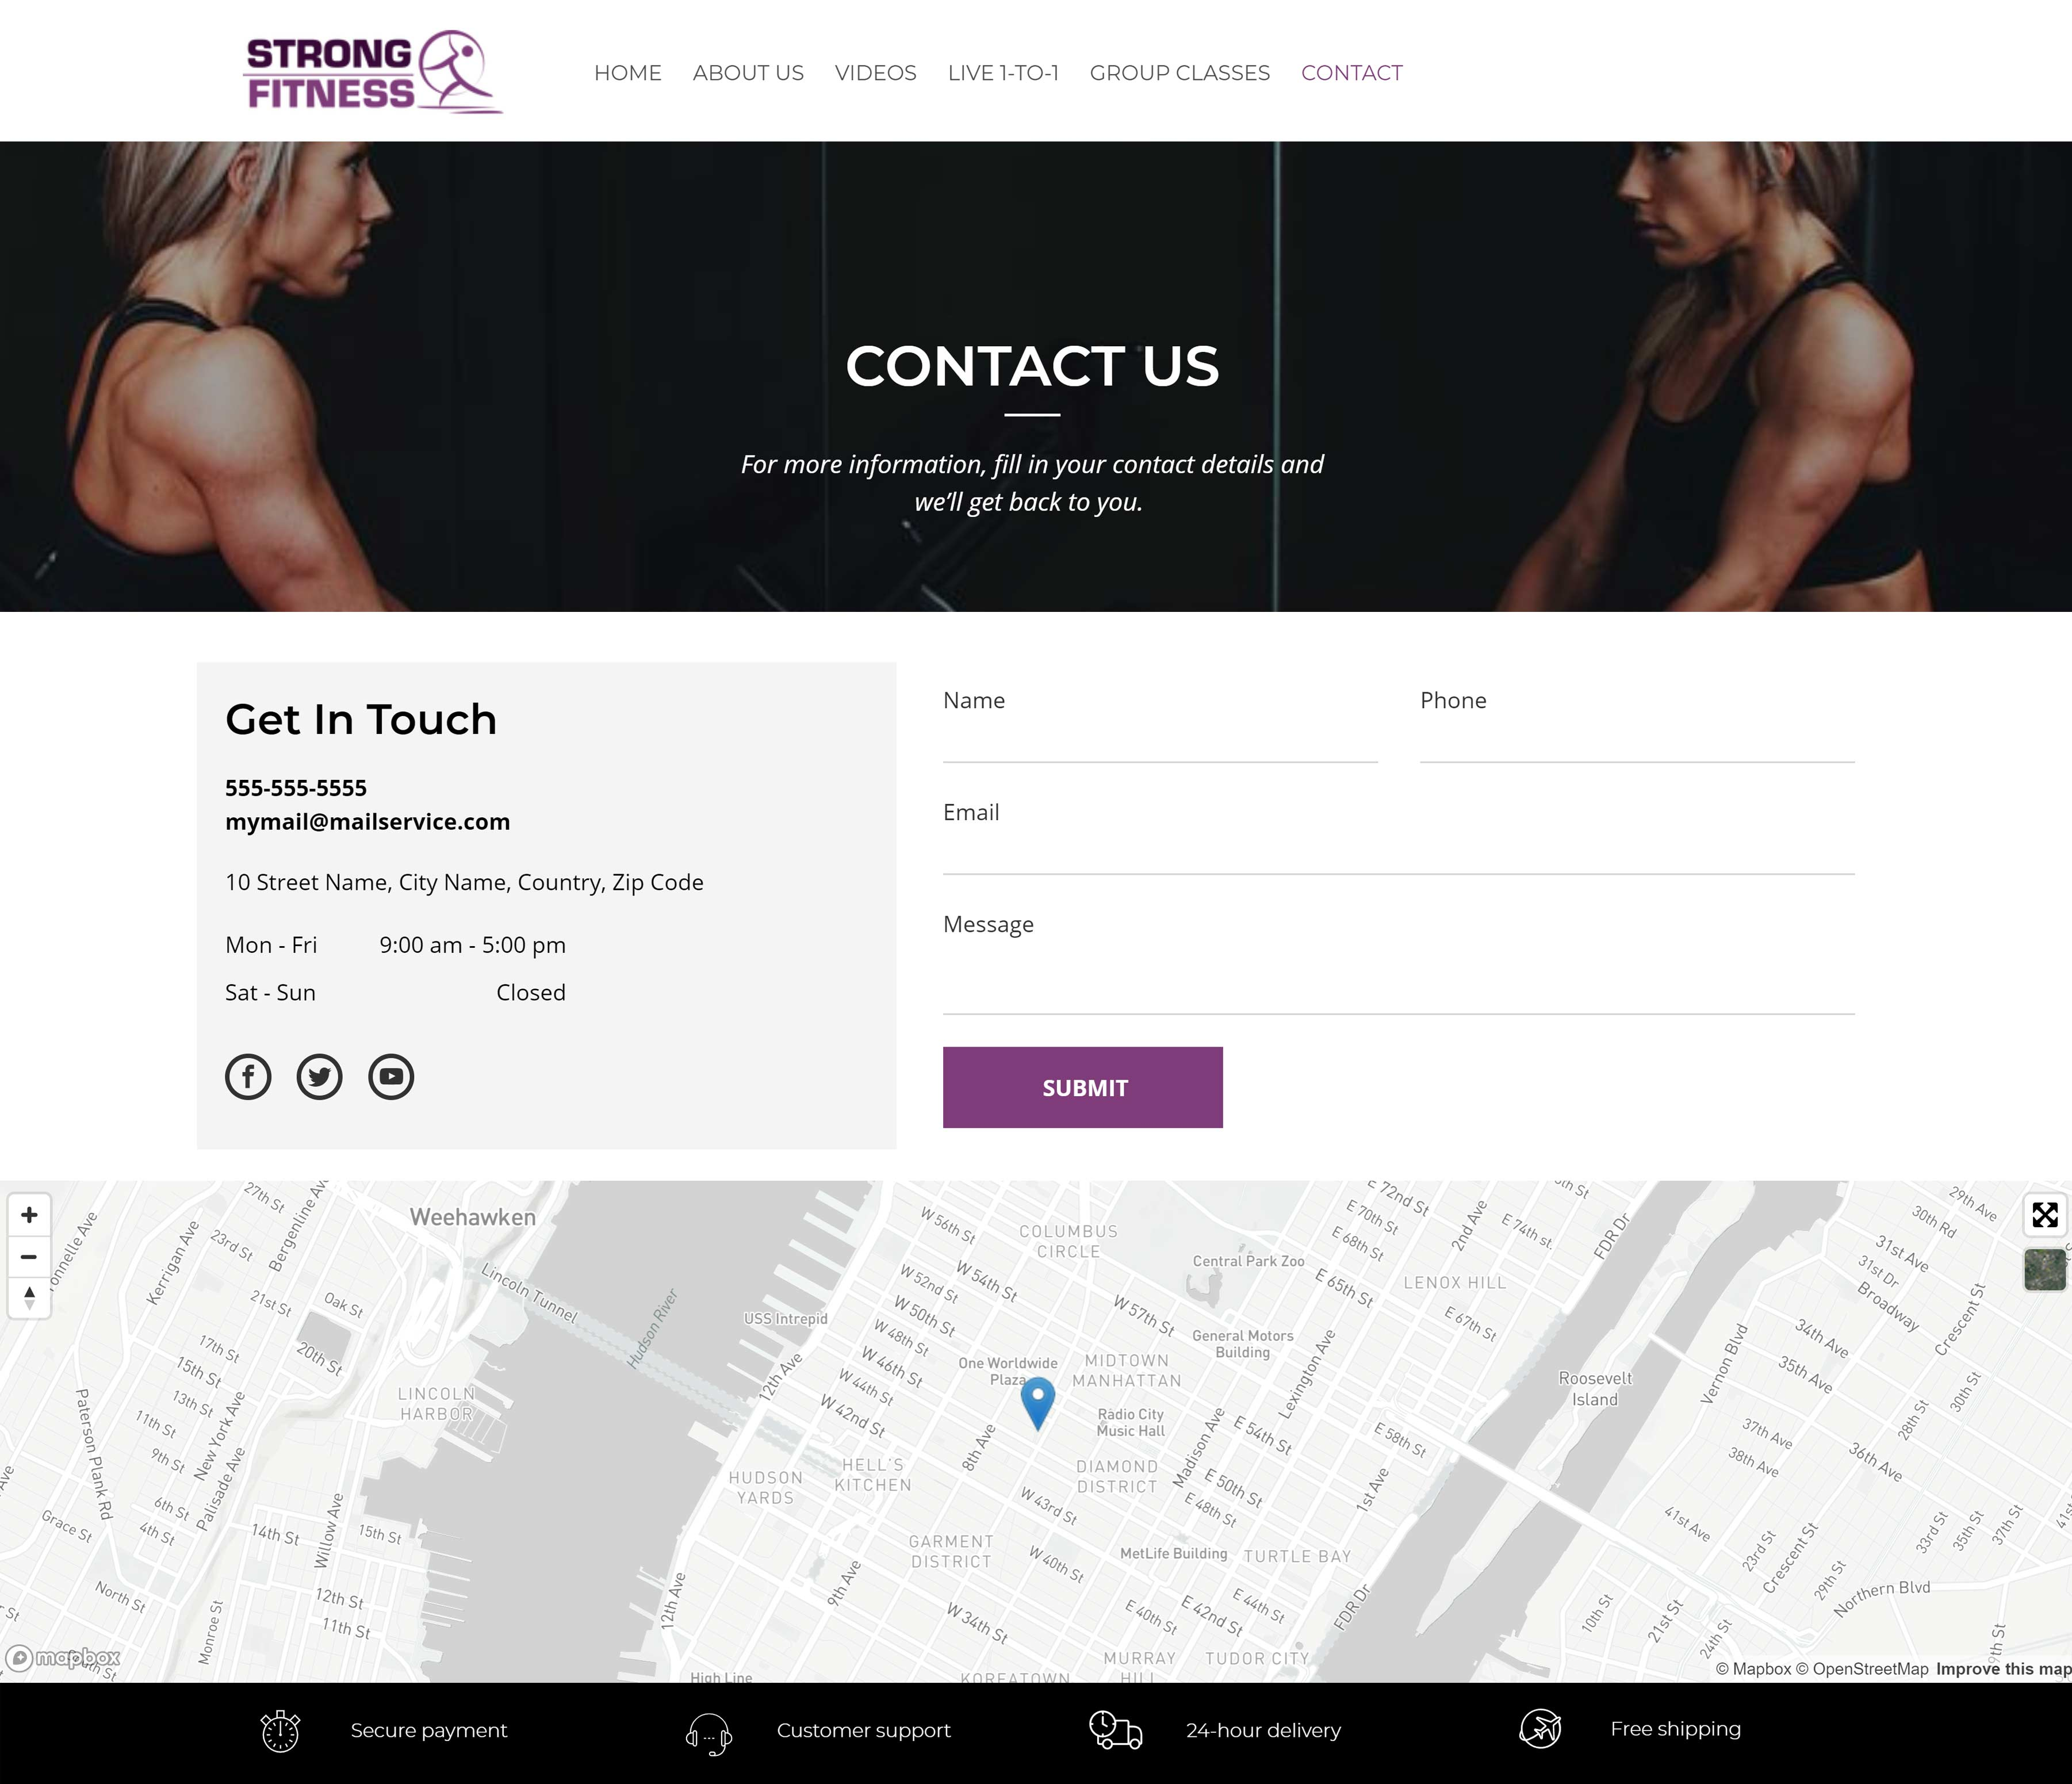 All-In-One Online Fitness Studio Website - Strong Fitness Contact Us Page Example